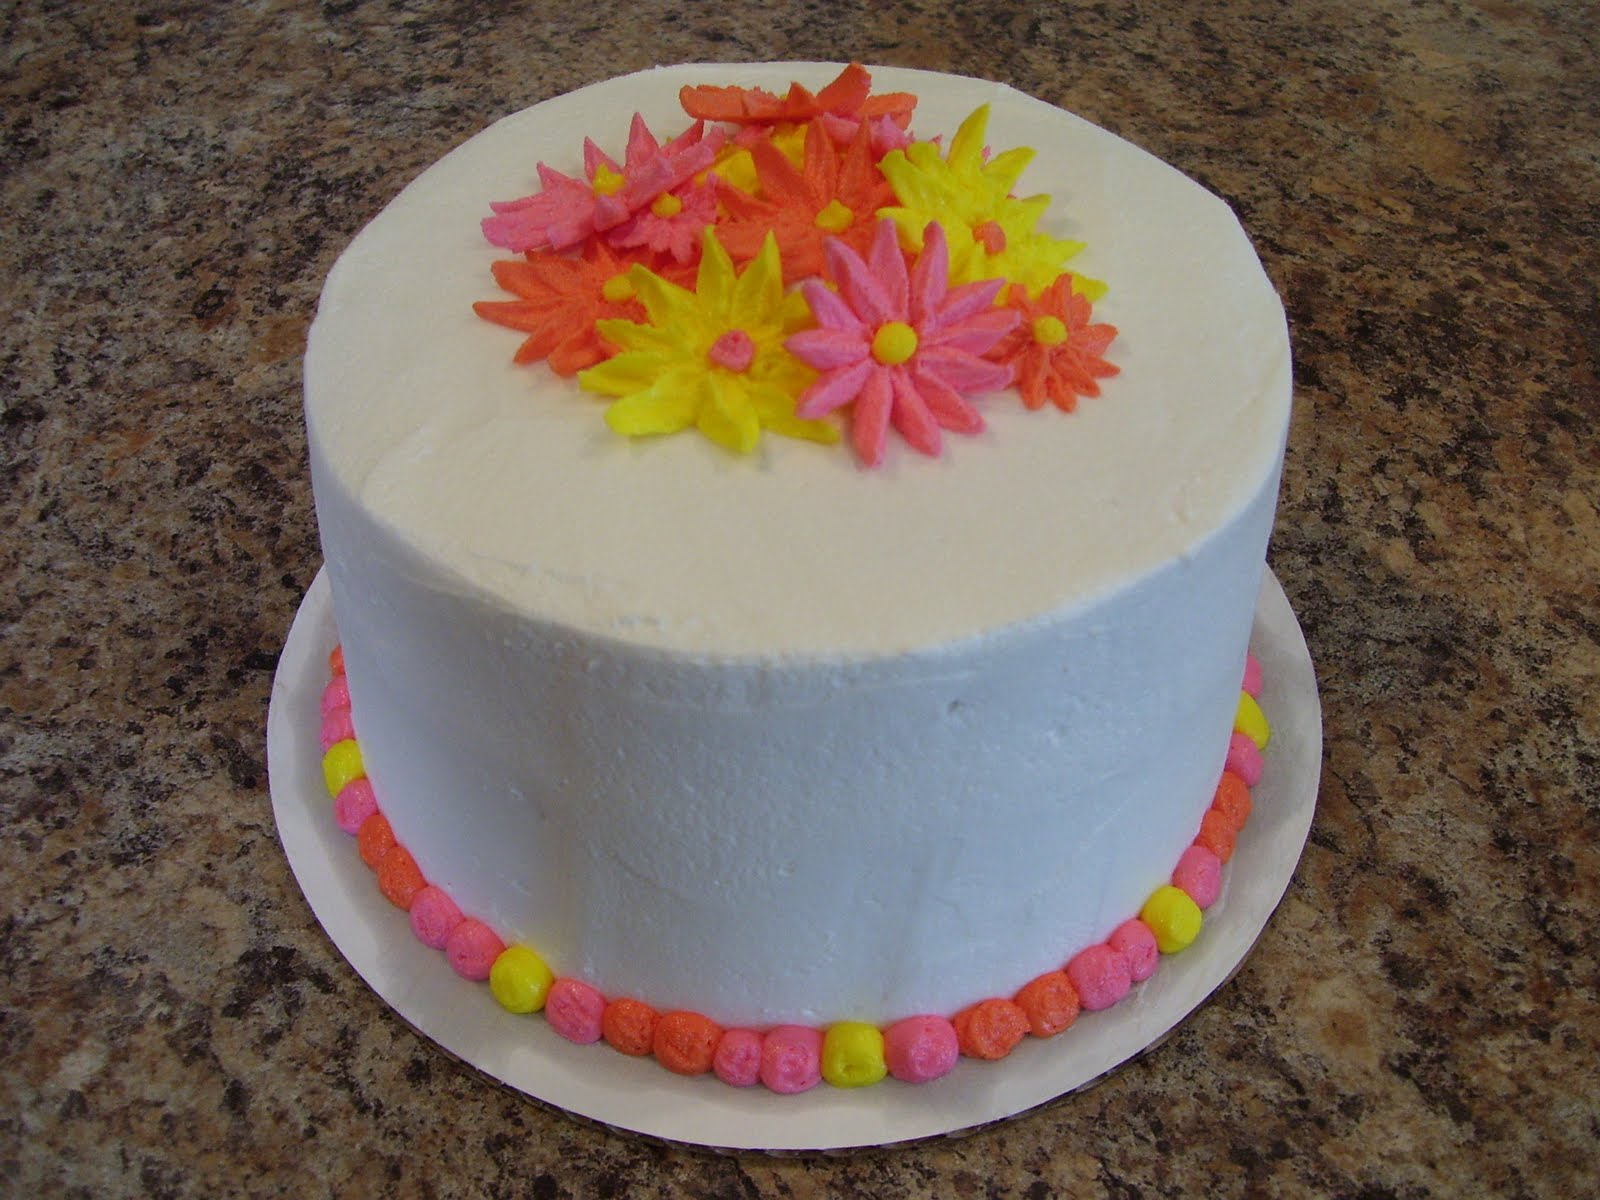 Cakes By Crystal: More Cakes